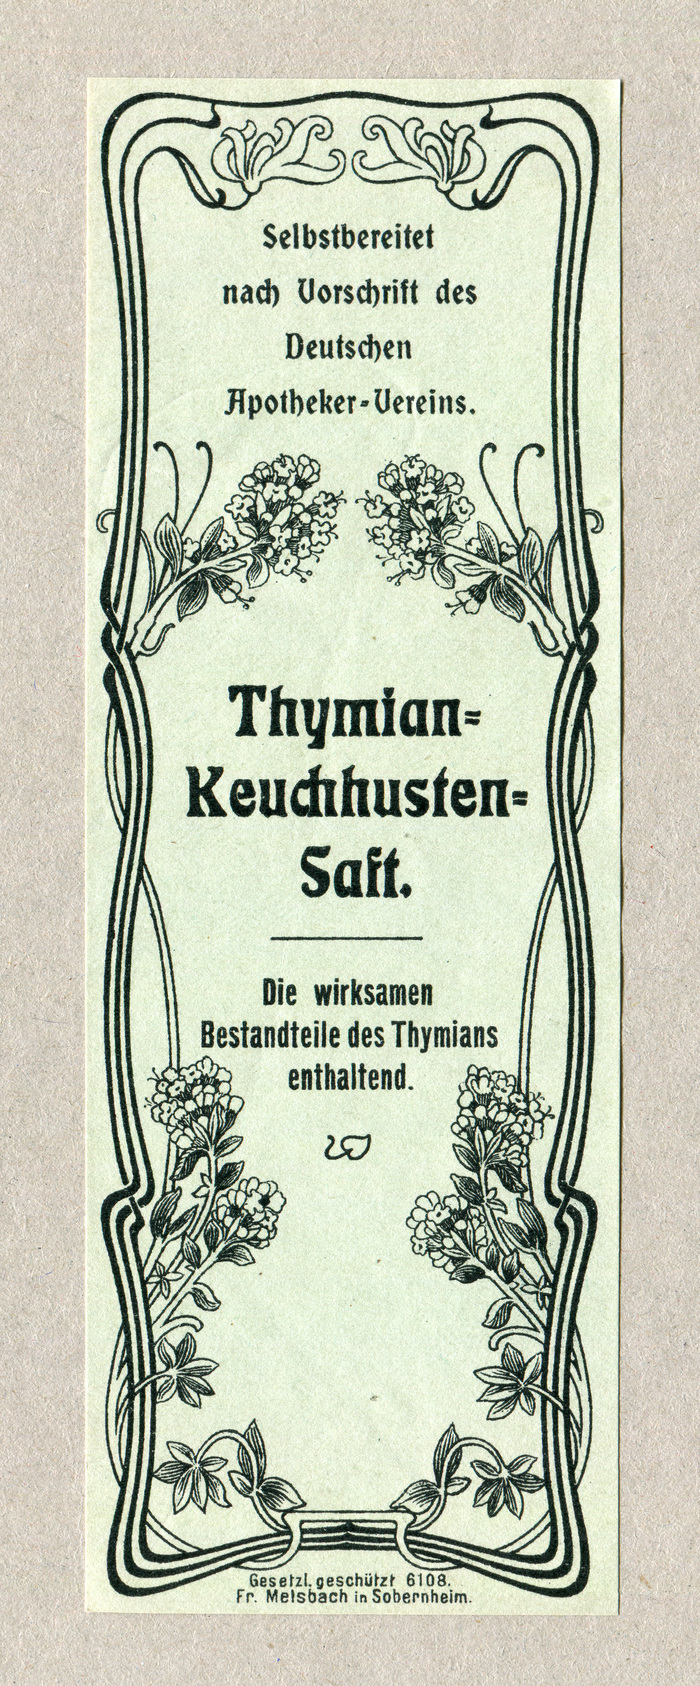 "The label for Thymian-Keuchhusten-Saft (""Thyme syrup for whooping cough"") pairs  with  and a condensed grotesk."